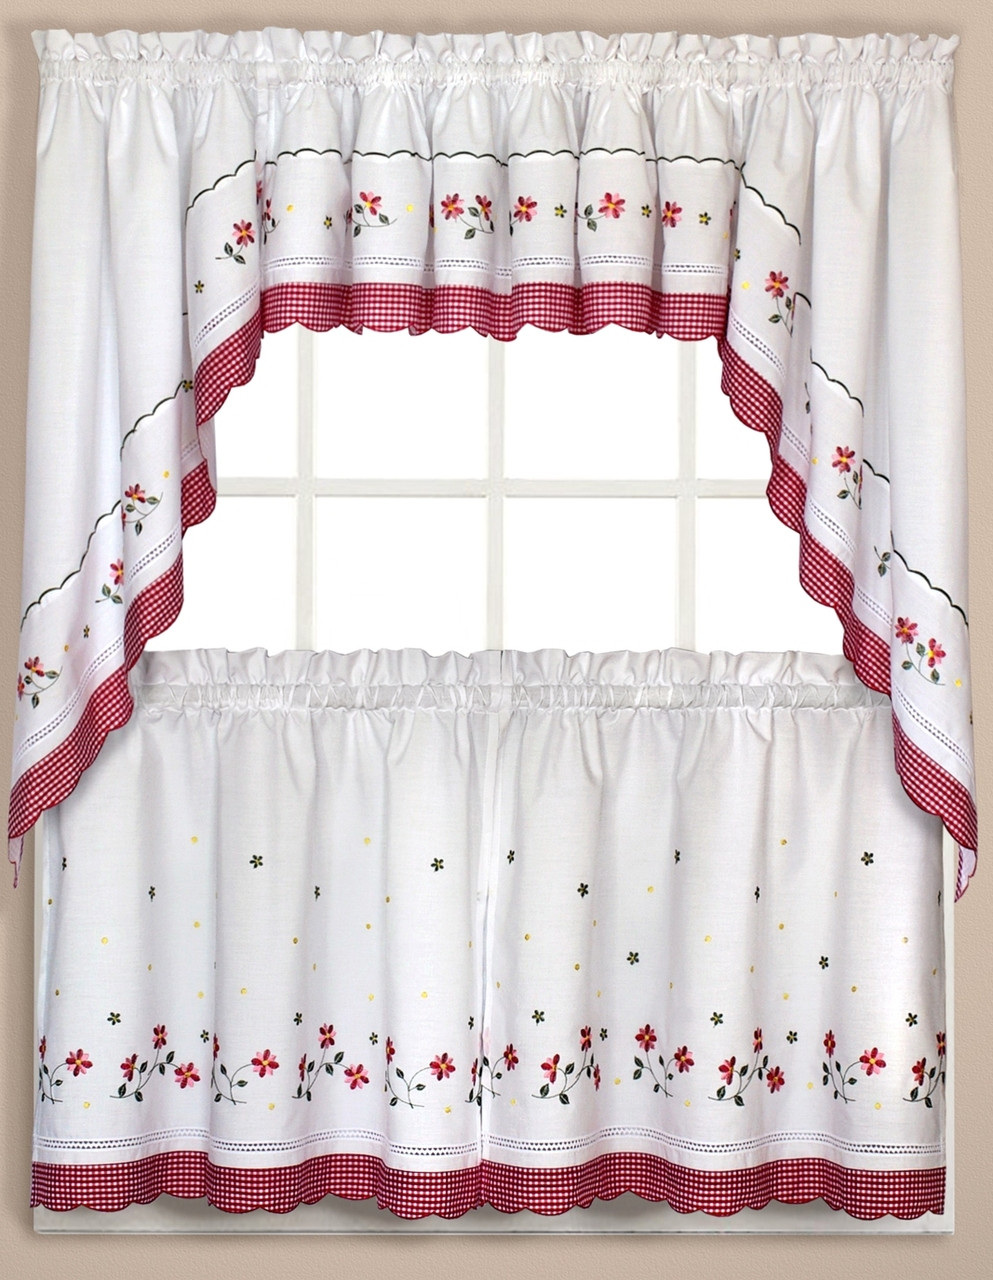 Gingham Floral Kitchen Curtain  Red  Linens4lesscom. Living Room Club Leeds. Living Room Den Combo Ideas. Living Room With Yellow Accents. Living Room Cleaning Games. American Home Living Room Furniture. Living Room Venue Johannesburg. Living Room Styles Uk. Living Room Accents Pinterest